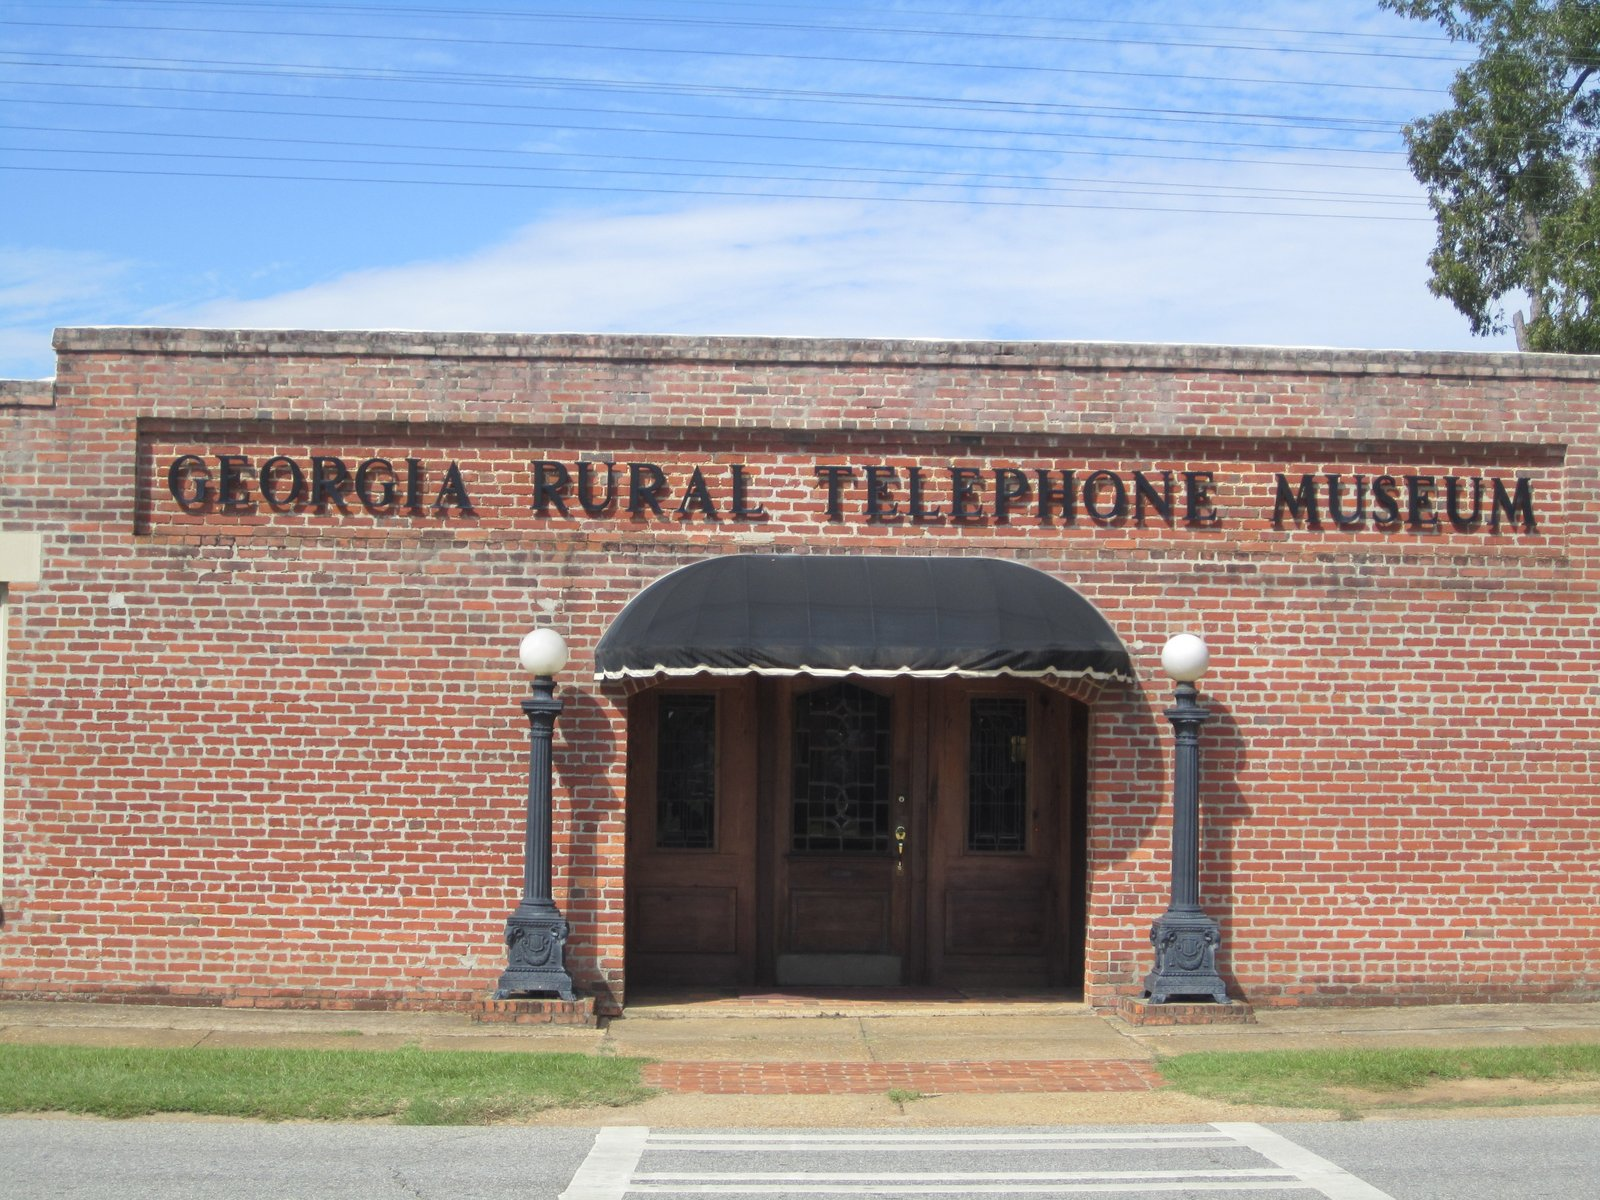 The Georgia Rural Telephone Museum